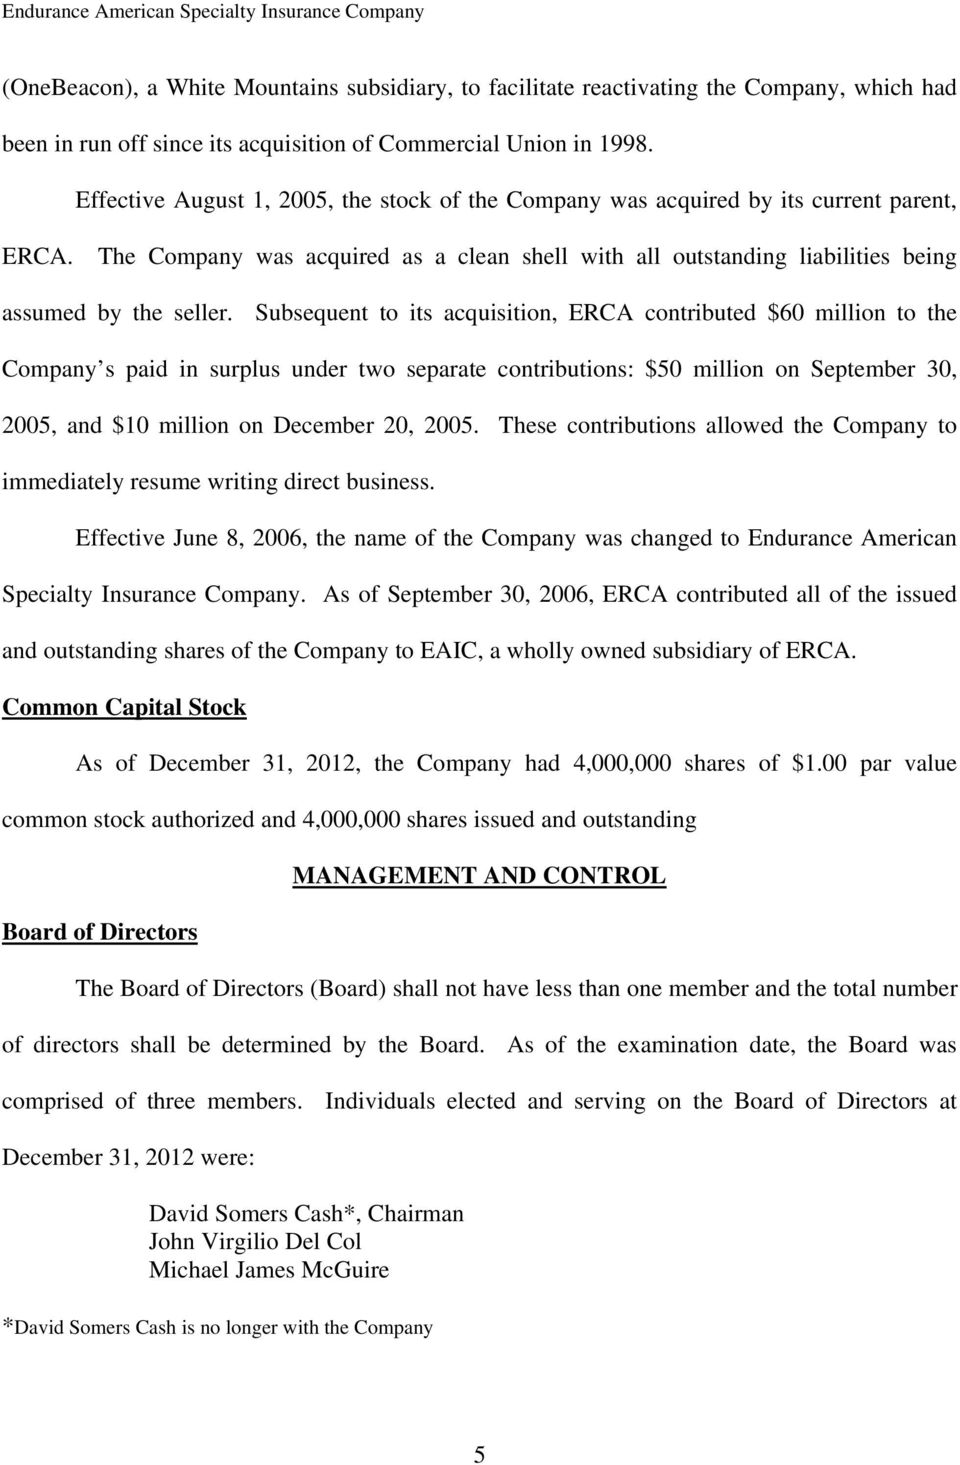 Subsequent to its acquisition, ERCA contributed $60 million to the Company s paid in surplus under two separate contributions: $50 million on September 30, 2005, and $10 million on December 20, 2005.